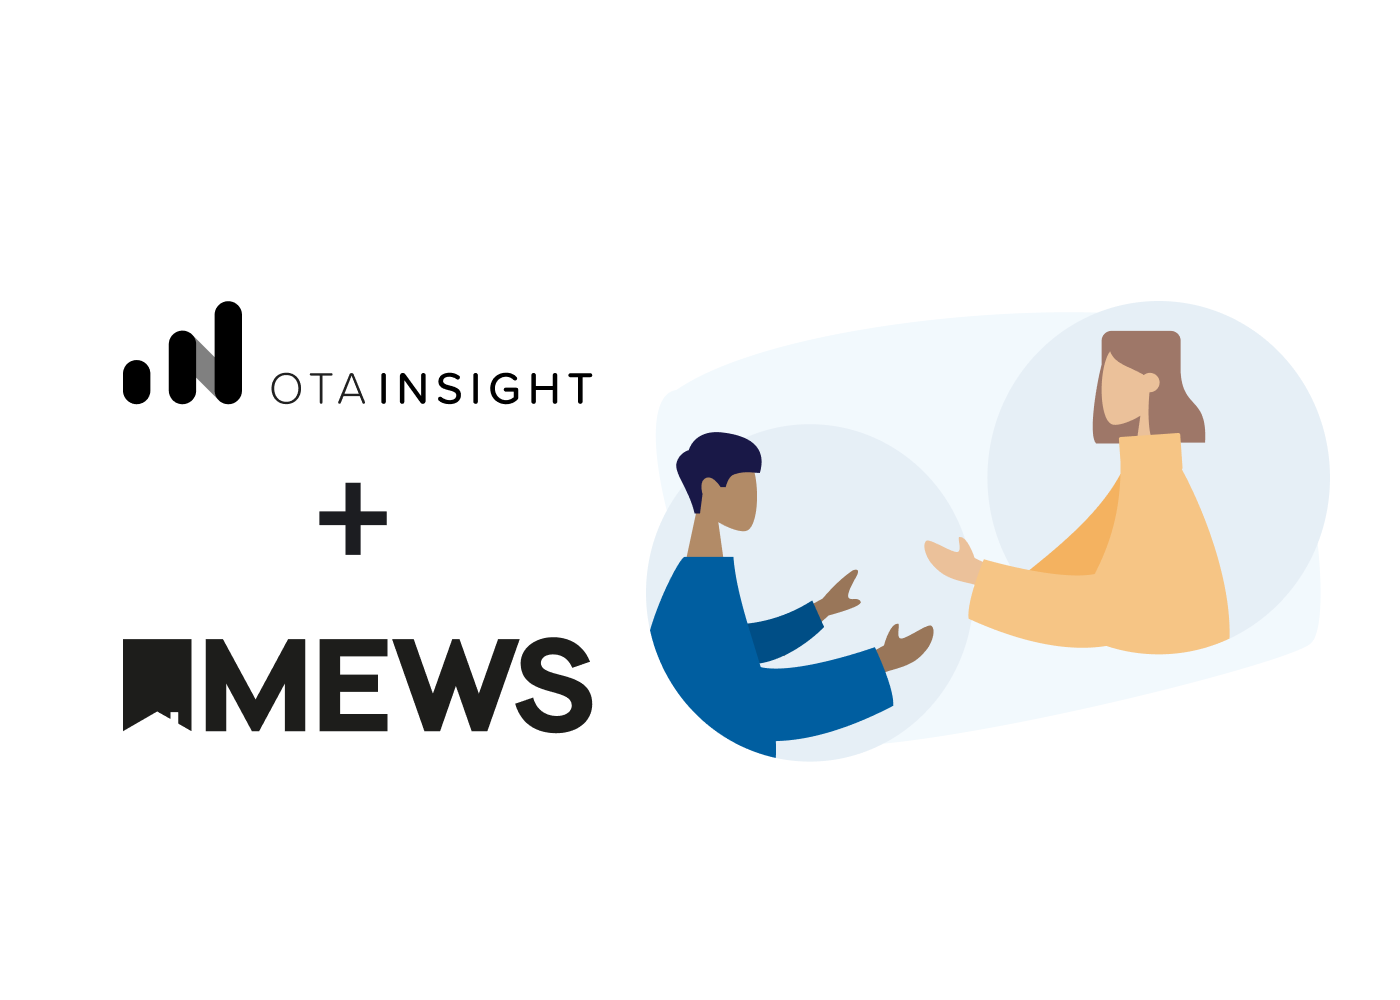 Hoteliers to benefit from new OTA Insight and Mews partnership